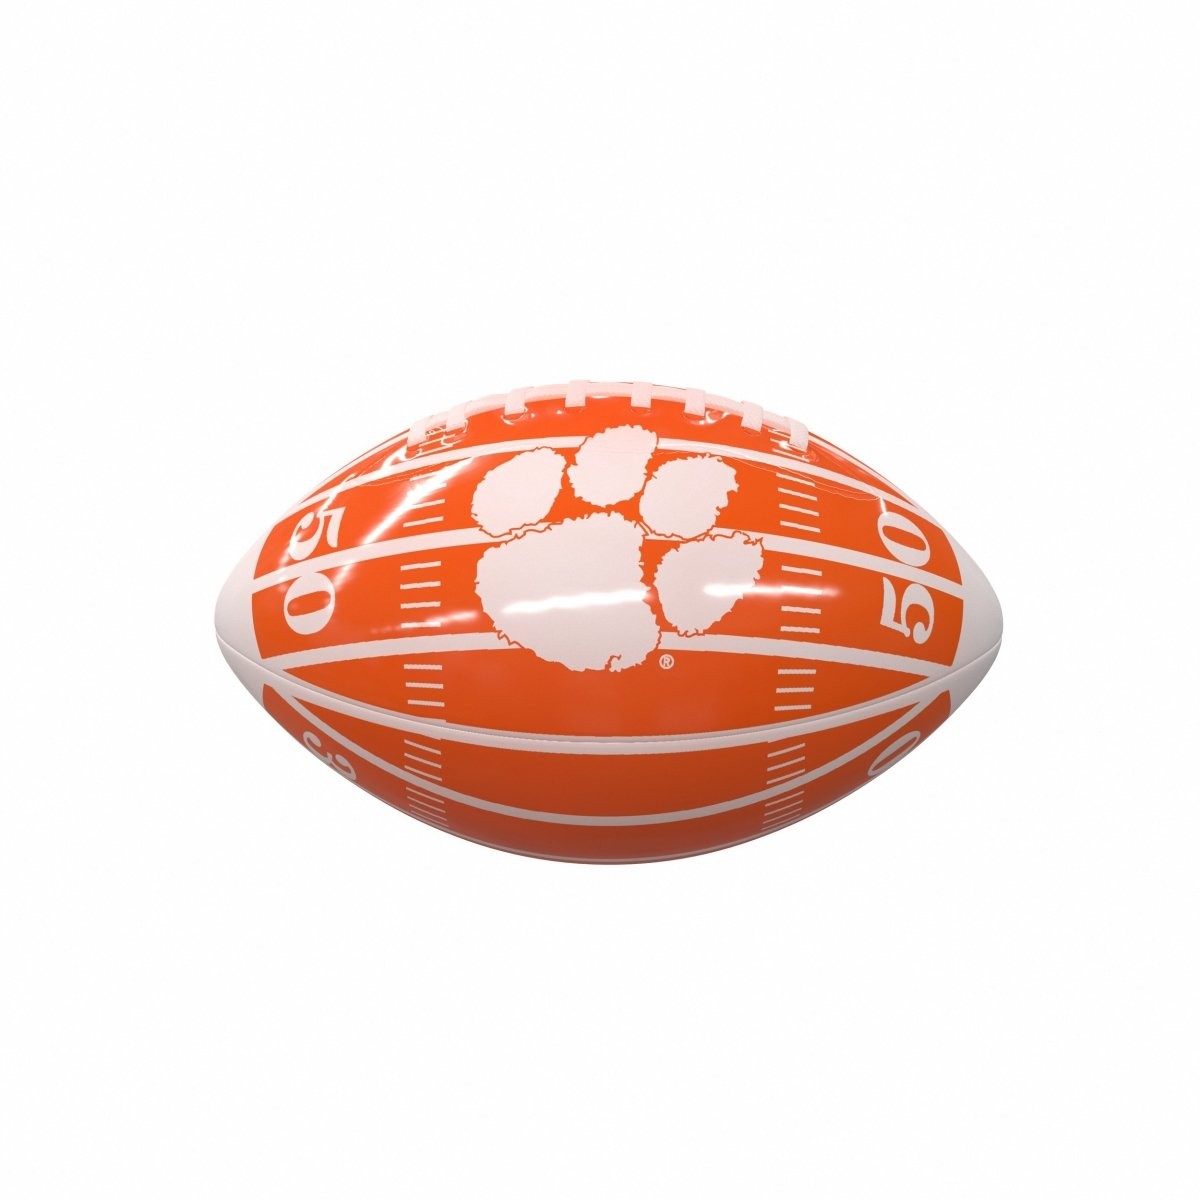 Clemson Tigers Mini Glossy Football - Mr. Knickerbocker